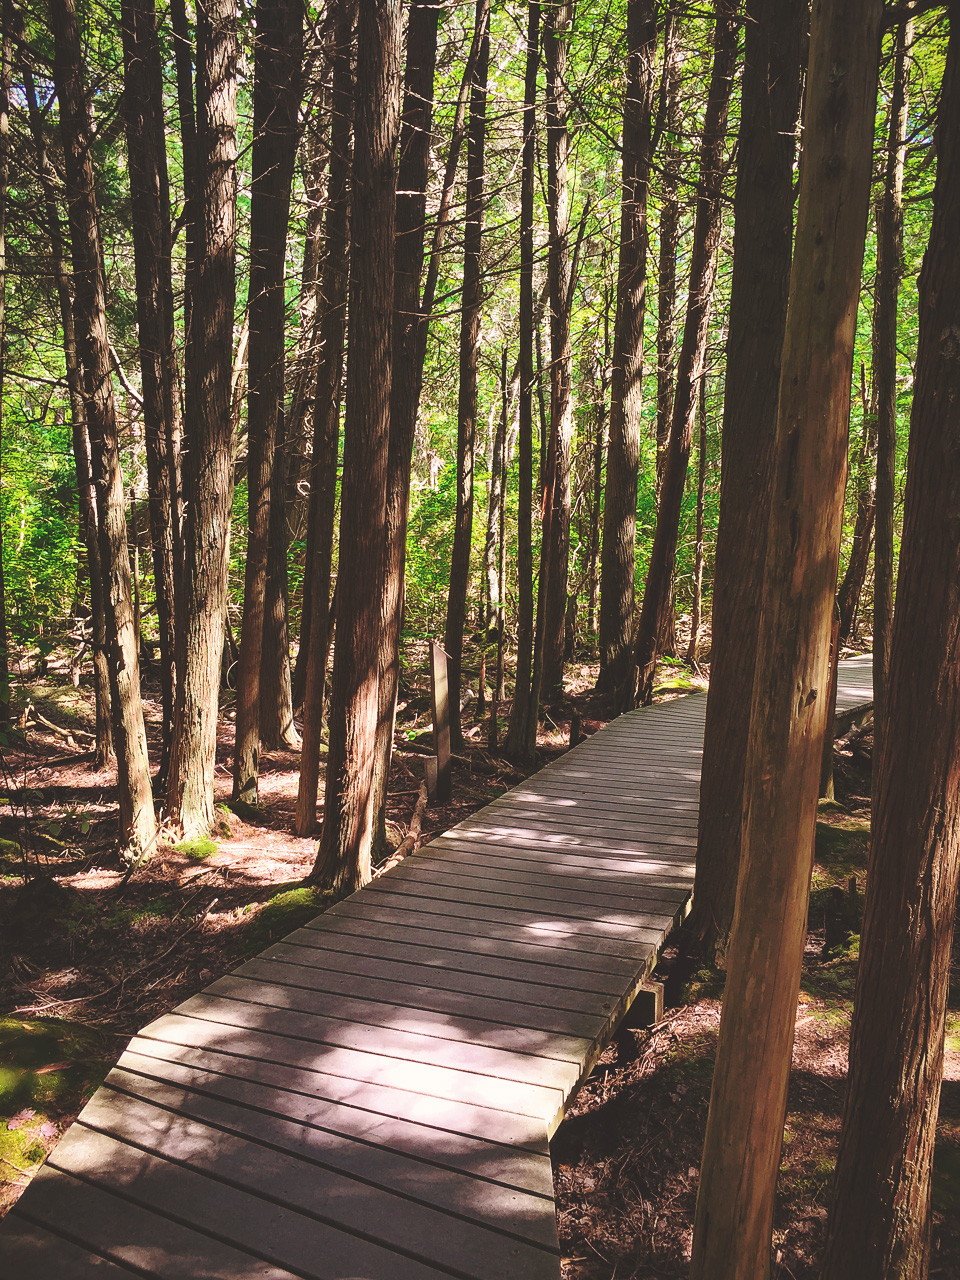 Atlantic White Cedar Swamp Trail in Cape Cod